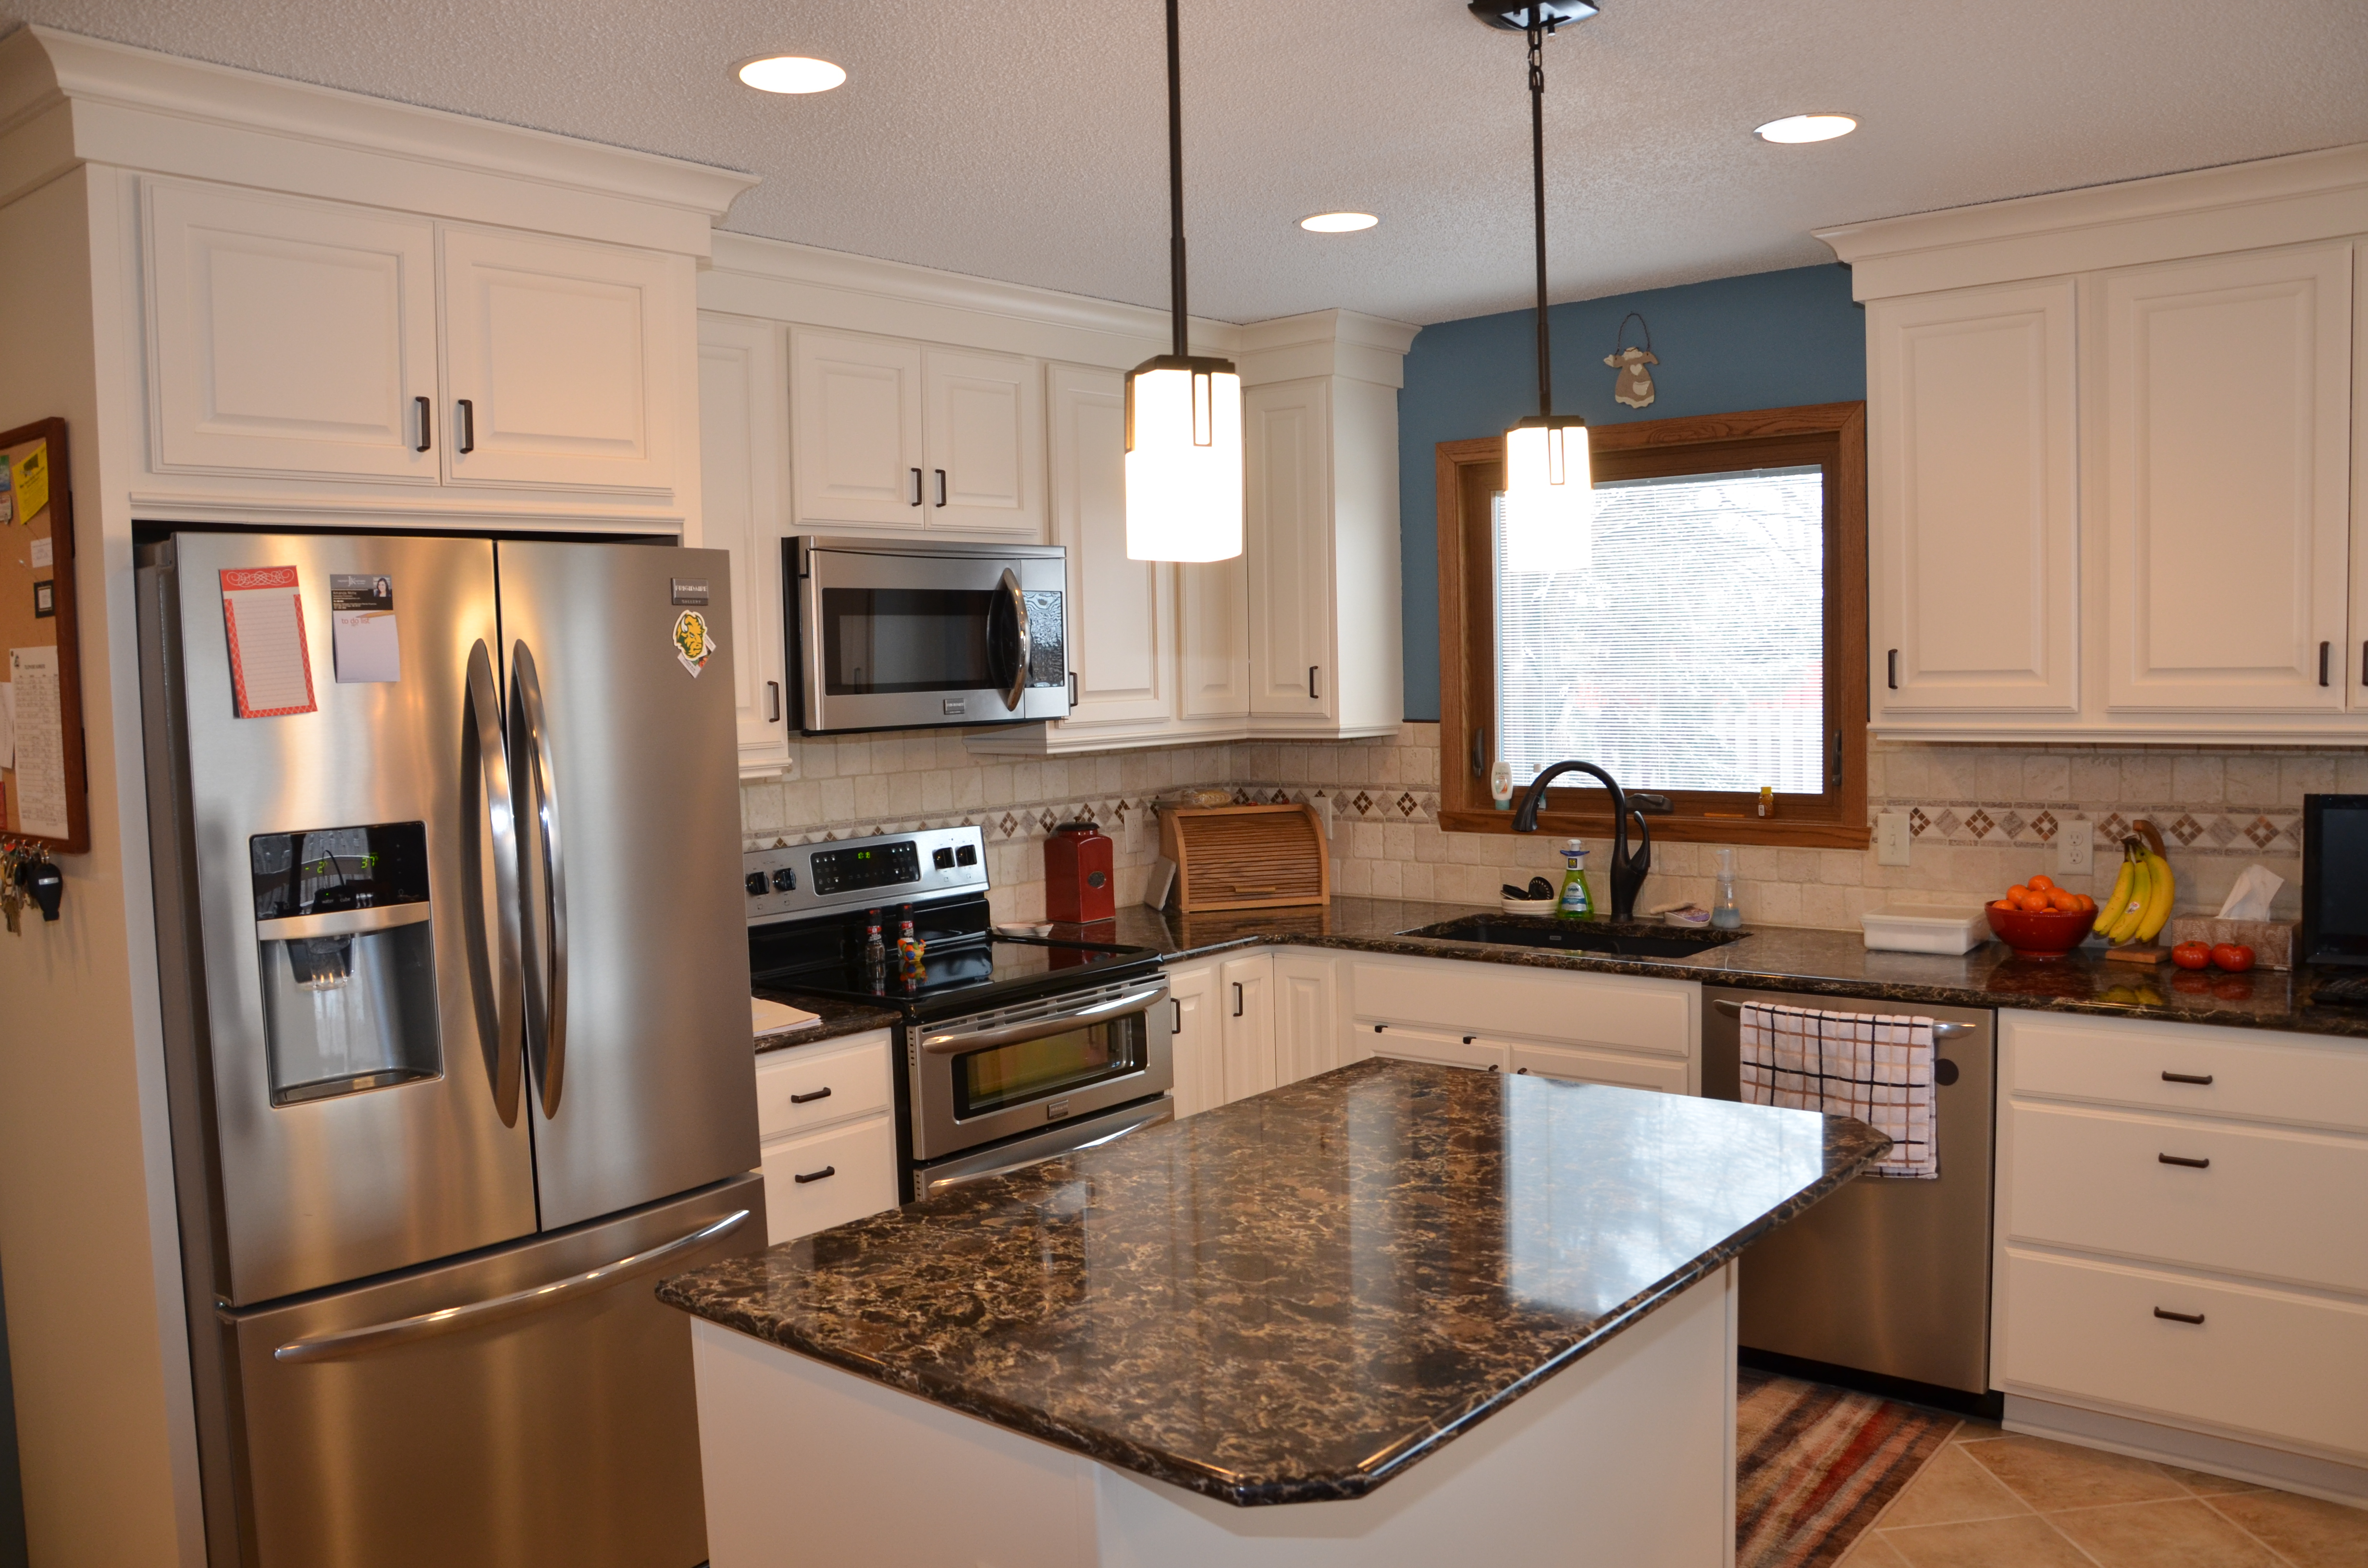 25 1/2 Ave. S, Fargo | Home Remodeling Contractors Fargo, ND ...